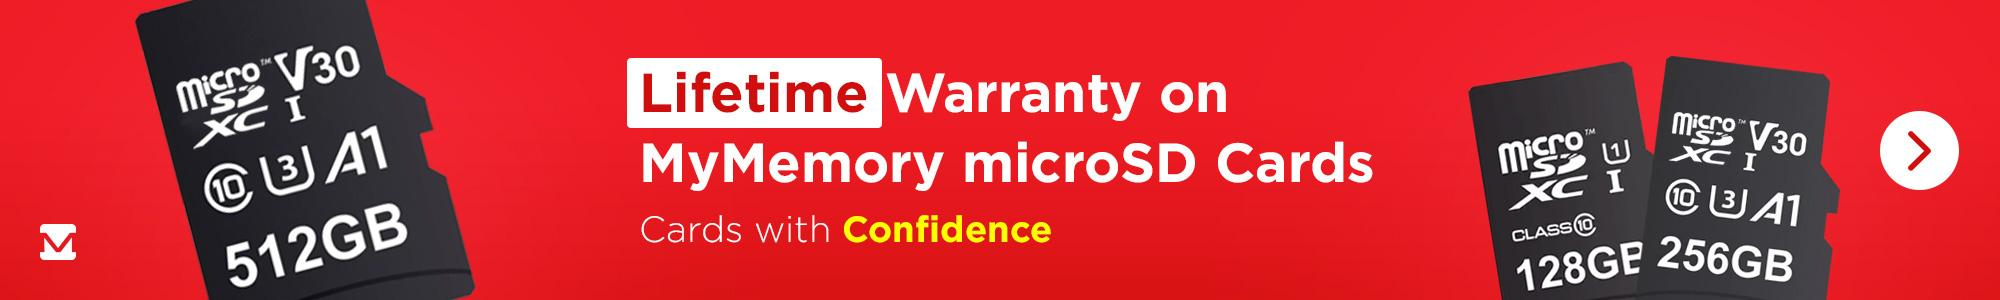 Lifetime Warranty on MyMemory microSD Cards! Cards with Confidence